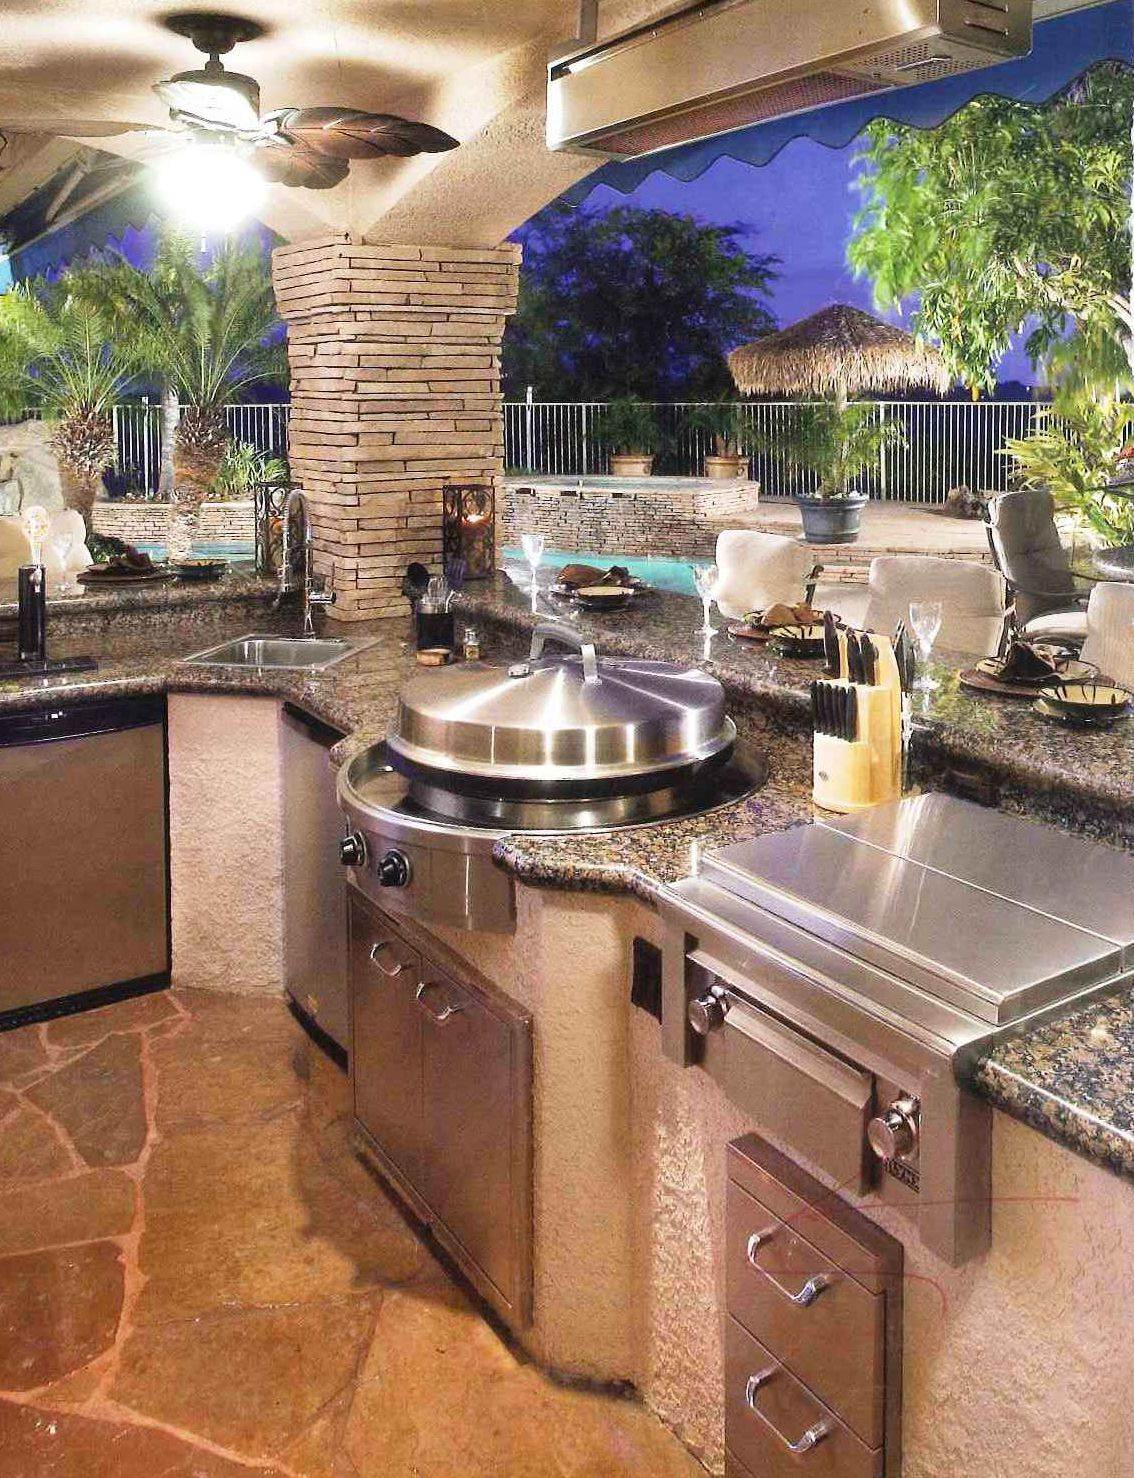 Backyard Kitchens Price Pfister Avalon Kitchen Faucet 70 Awesomely Clever Ideas For Outdoor Designs Homes Circular Cooktop In Appliances View Luxury Real Estate Listings At Www Seattleluxurylifestyle Com More